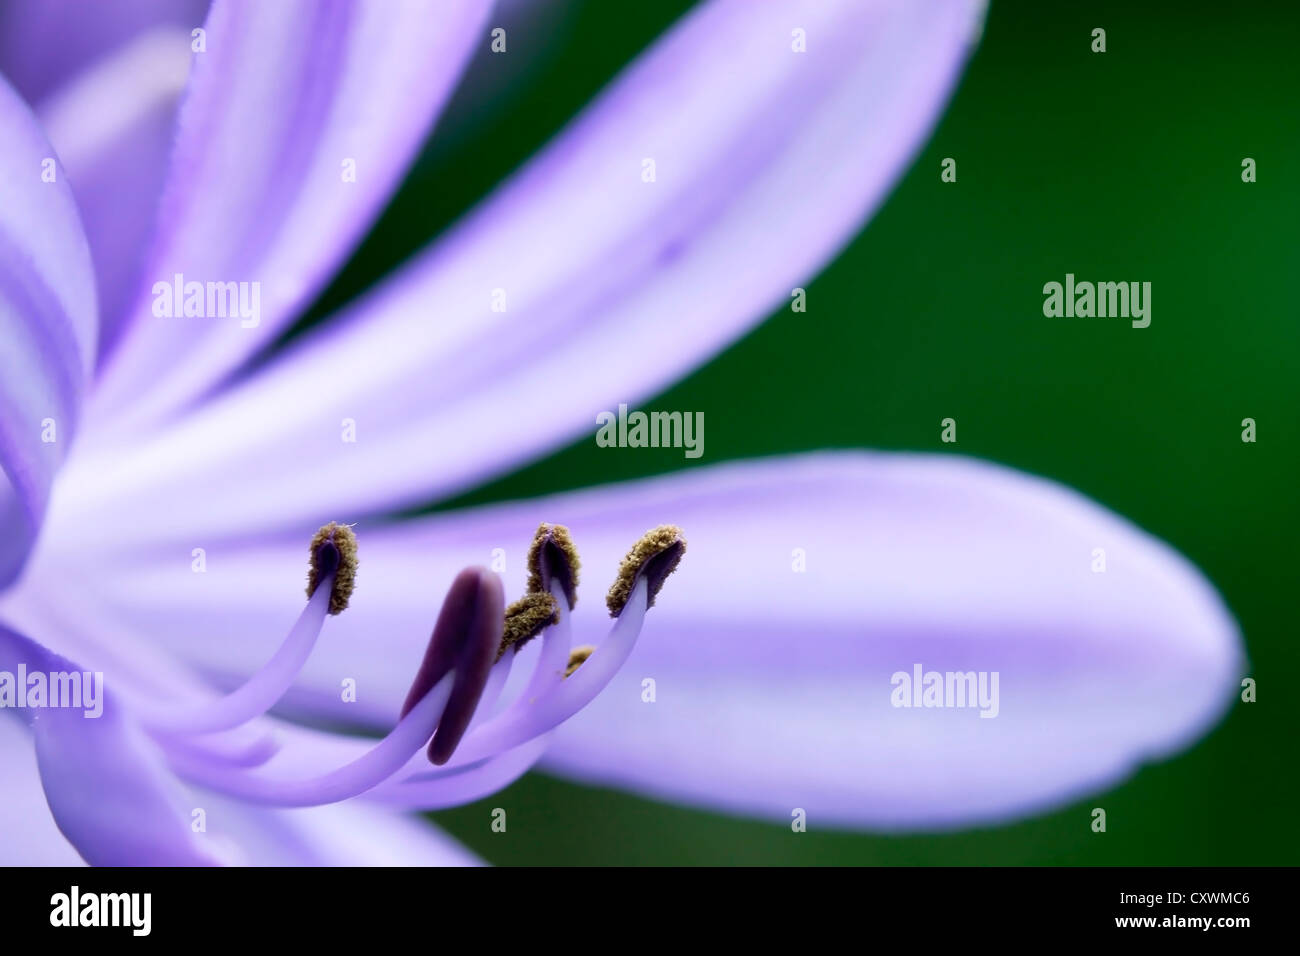 Angiosperms and Gymnosperms of Lily flower - Stock Image